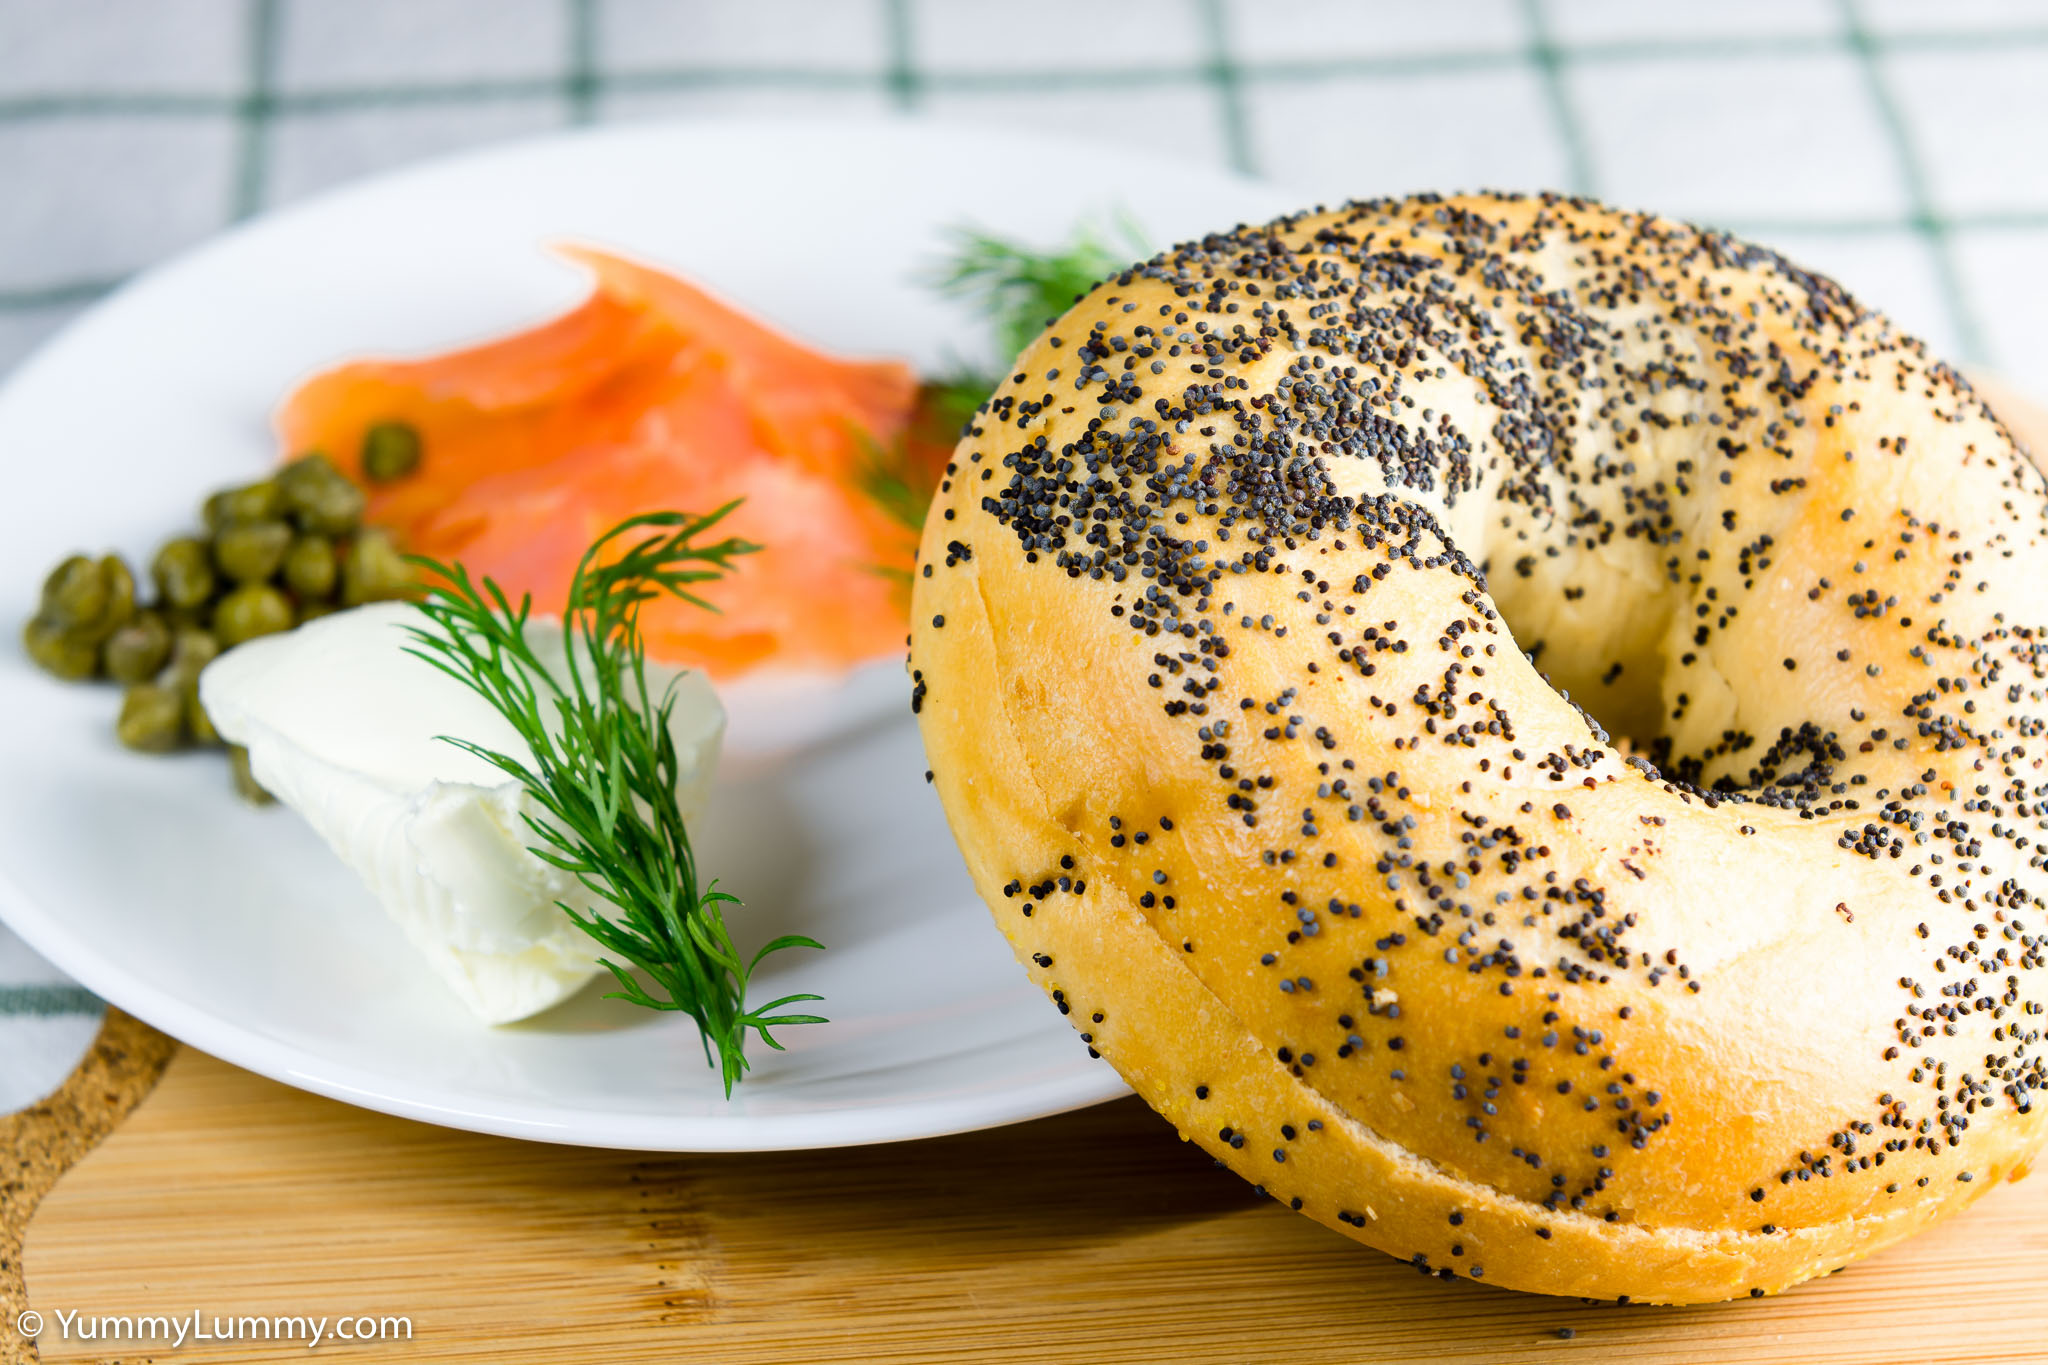 Smoked salmon, cream cheese, dill and capers on a poppyseed bagel for lunch